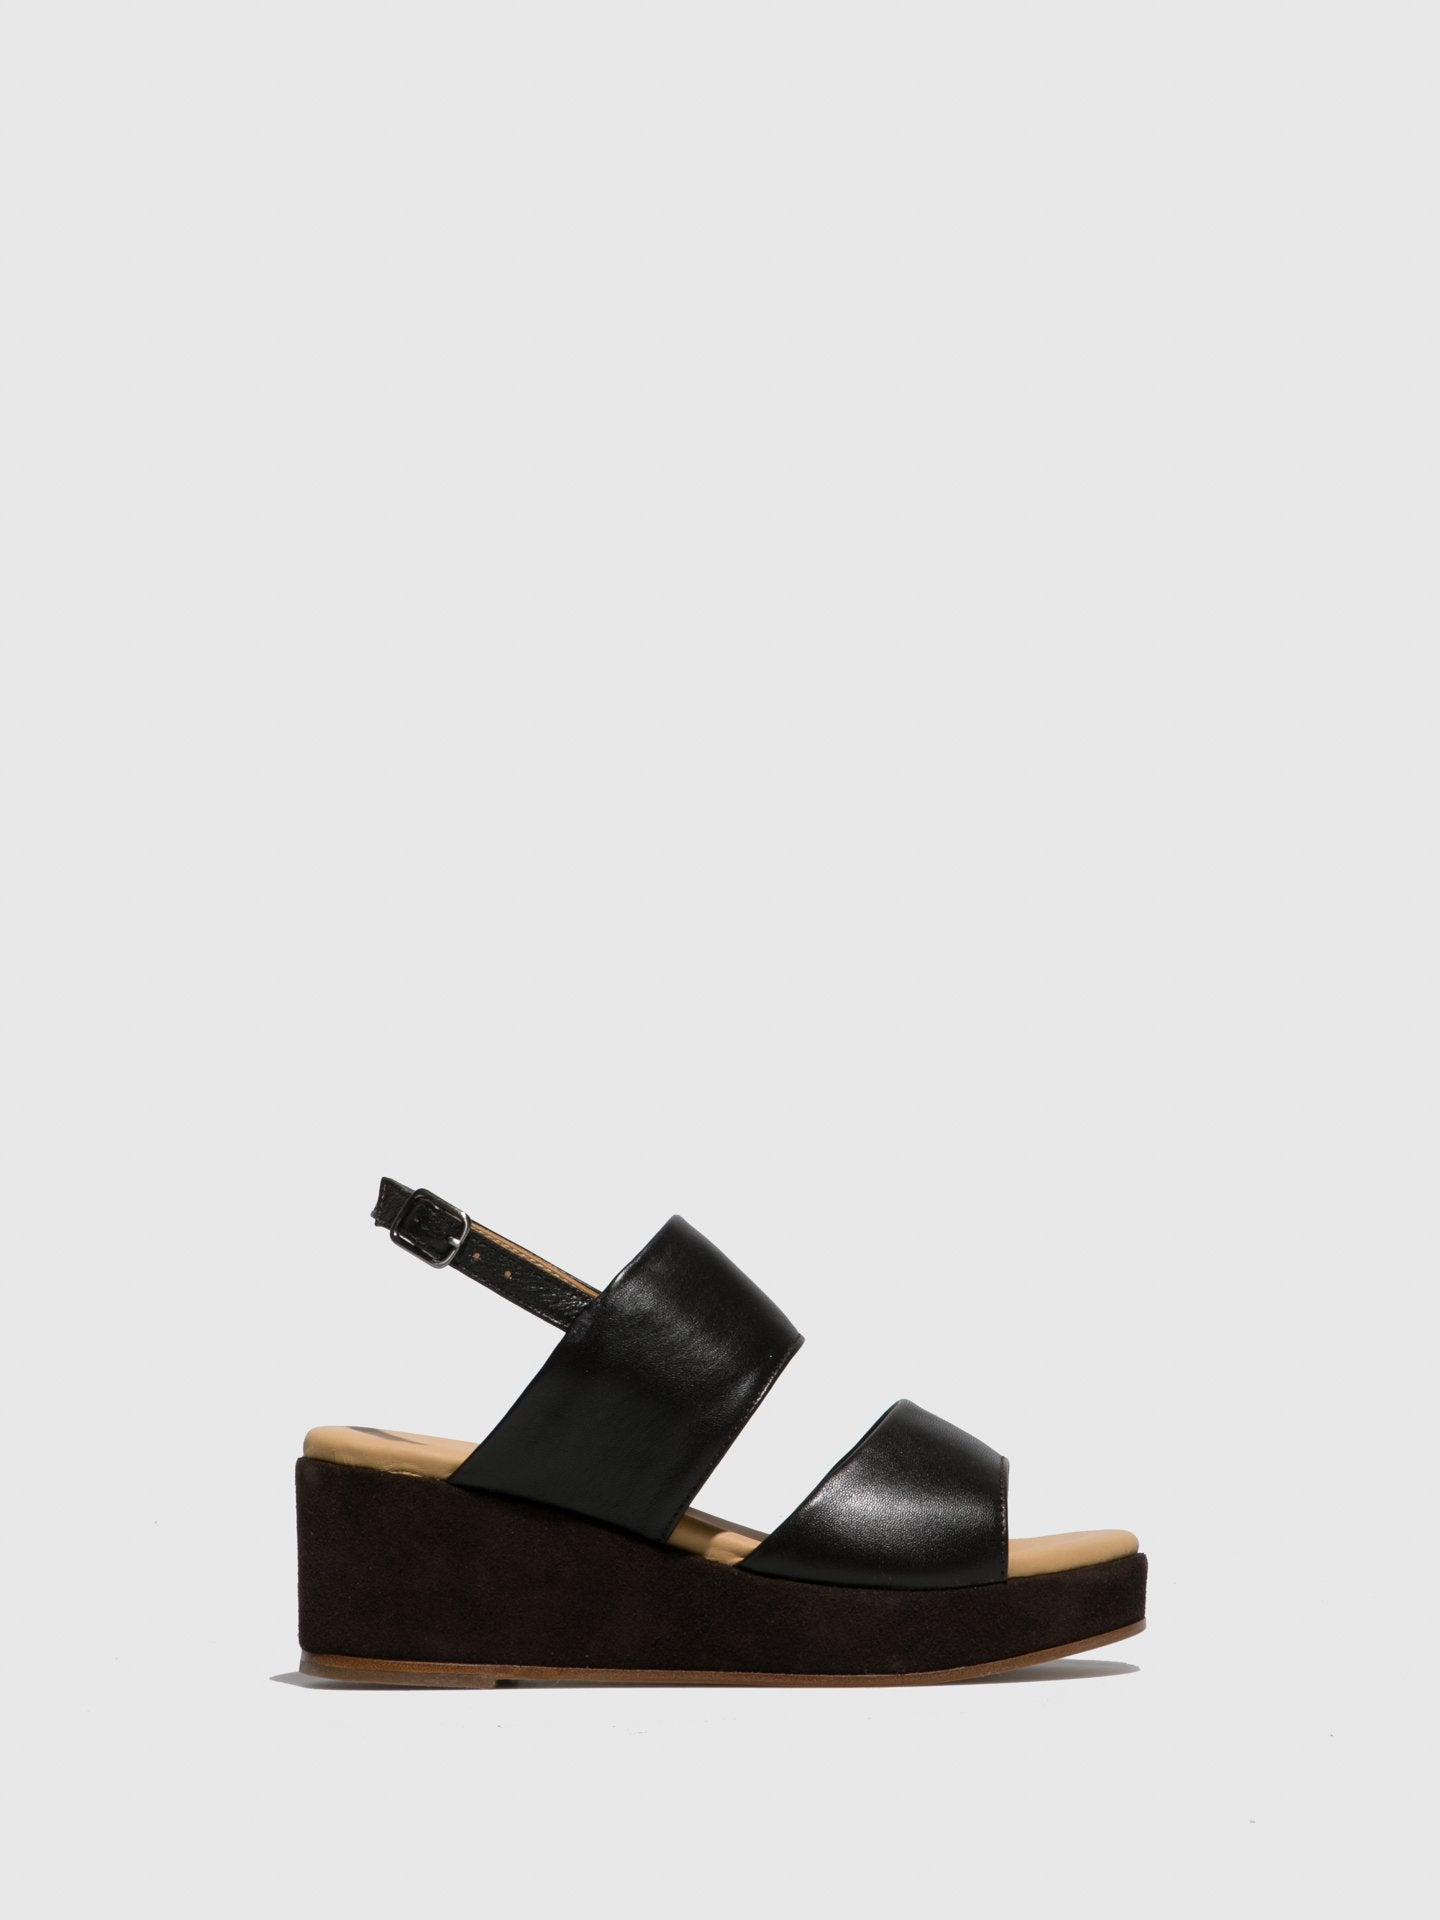 Only2me Black Wedge Sandals